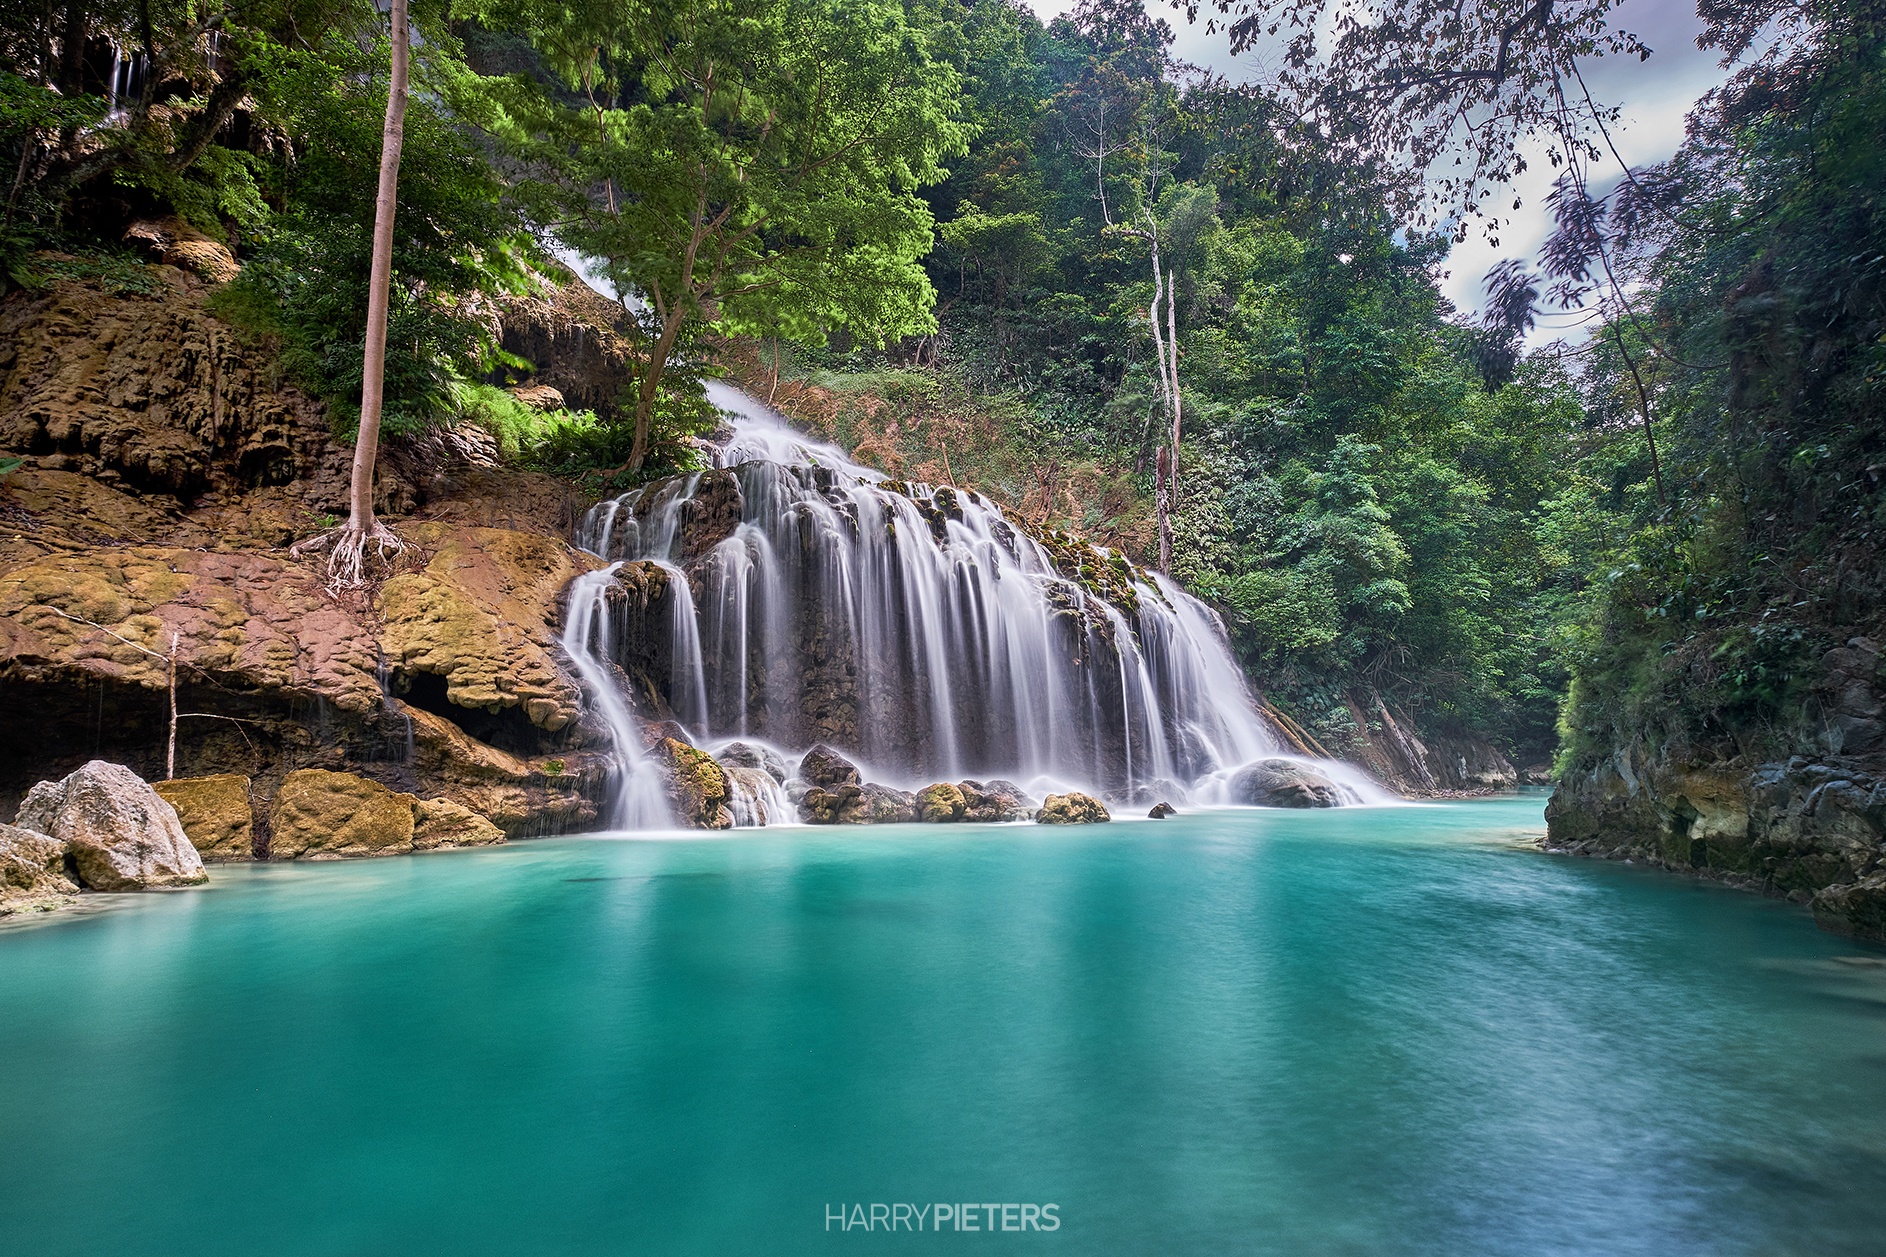 Lapopu Waterfall, Indonesia